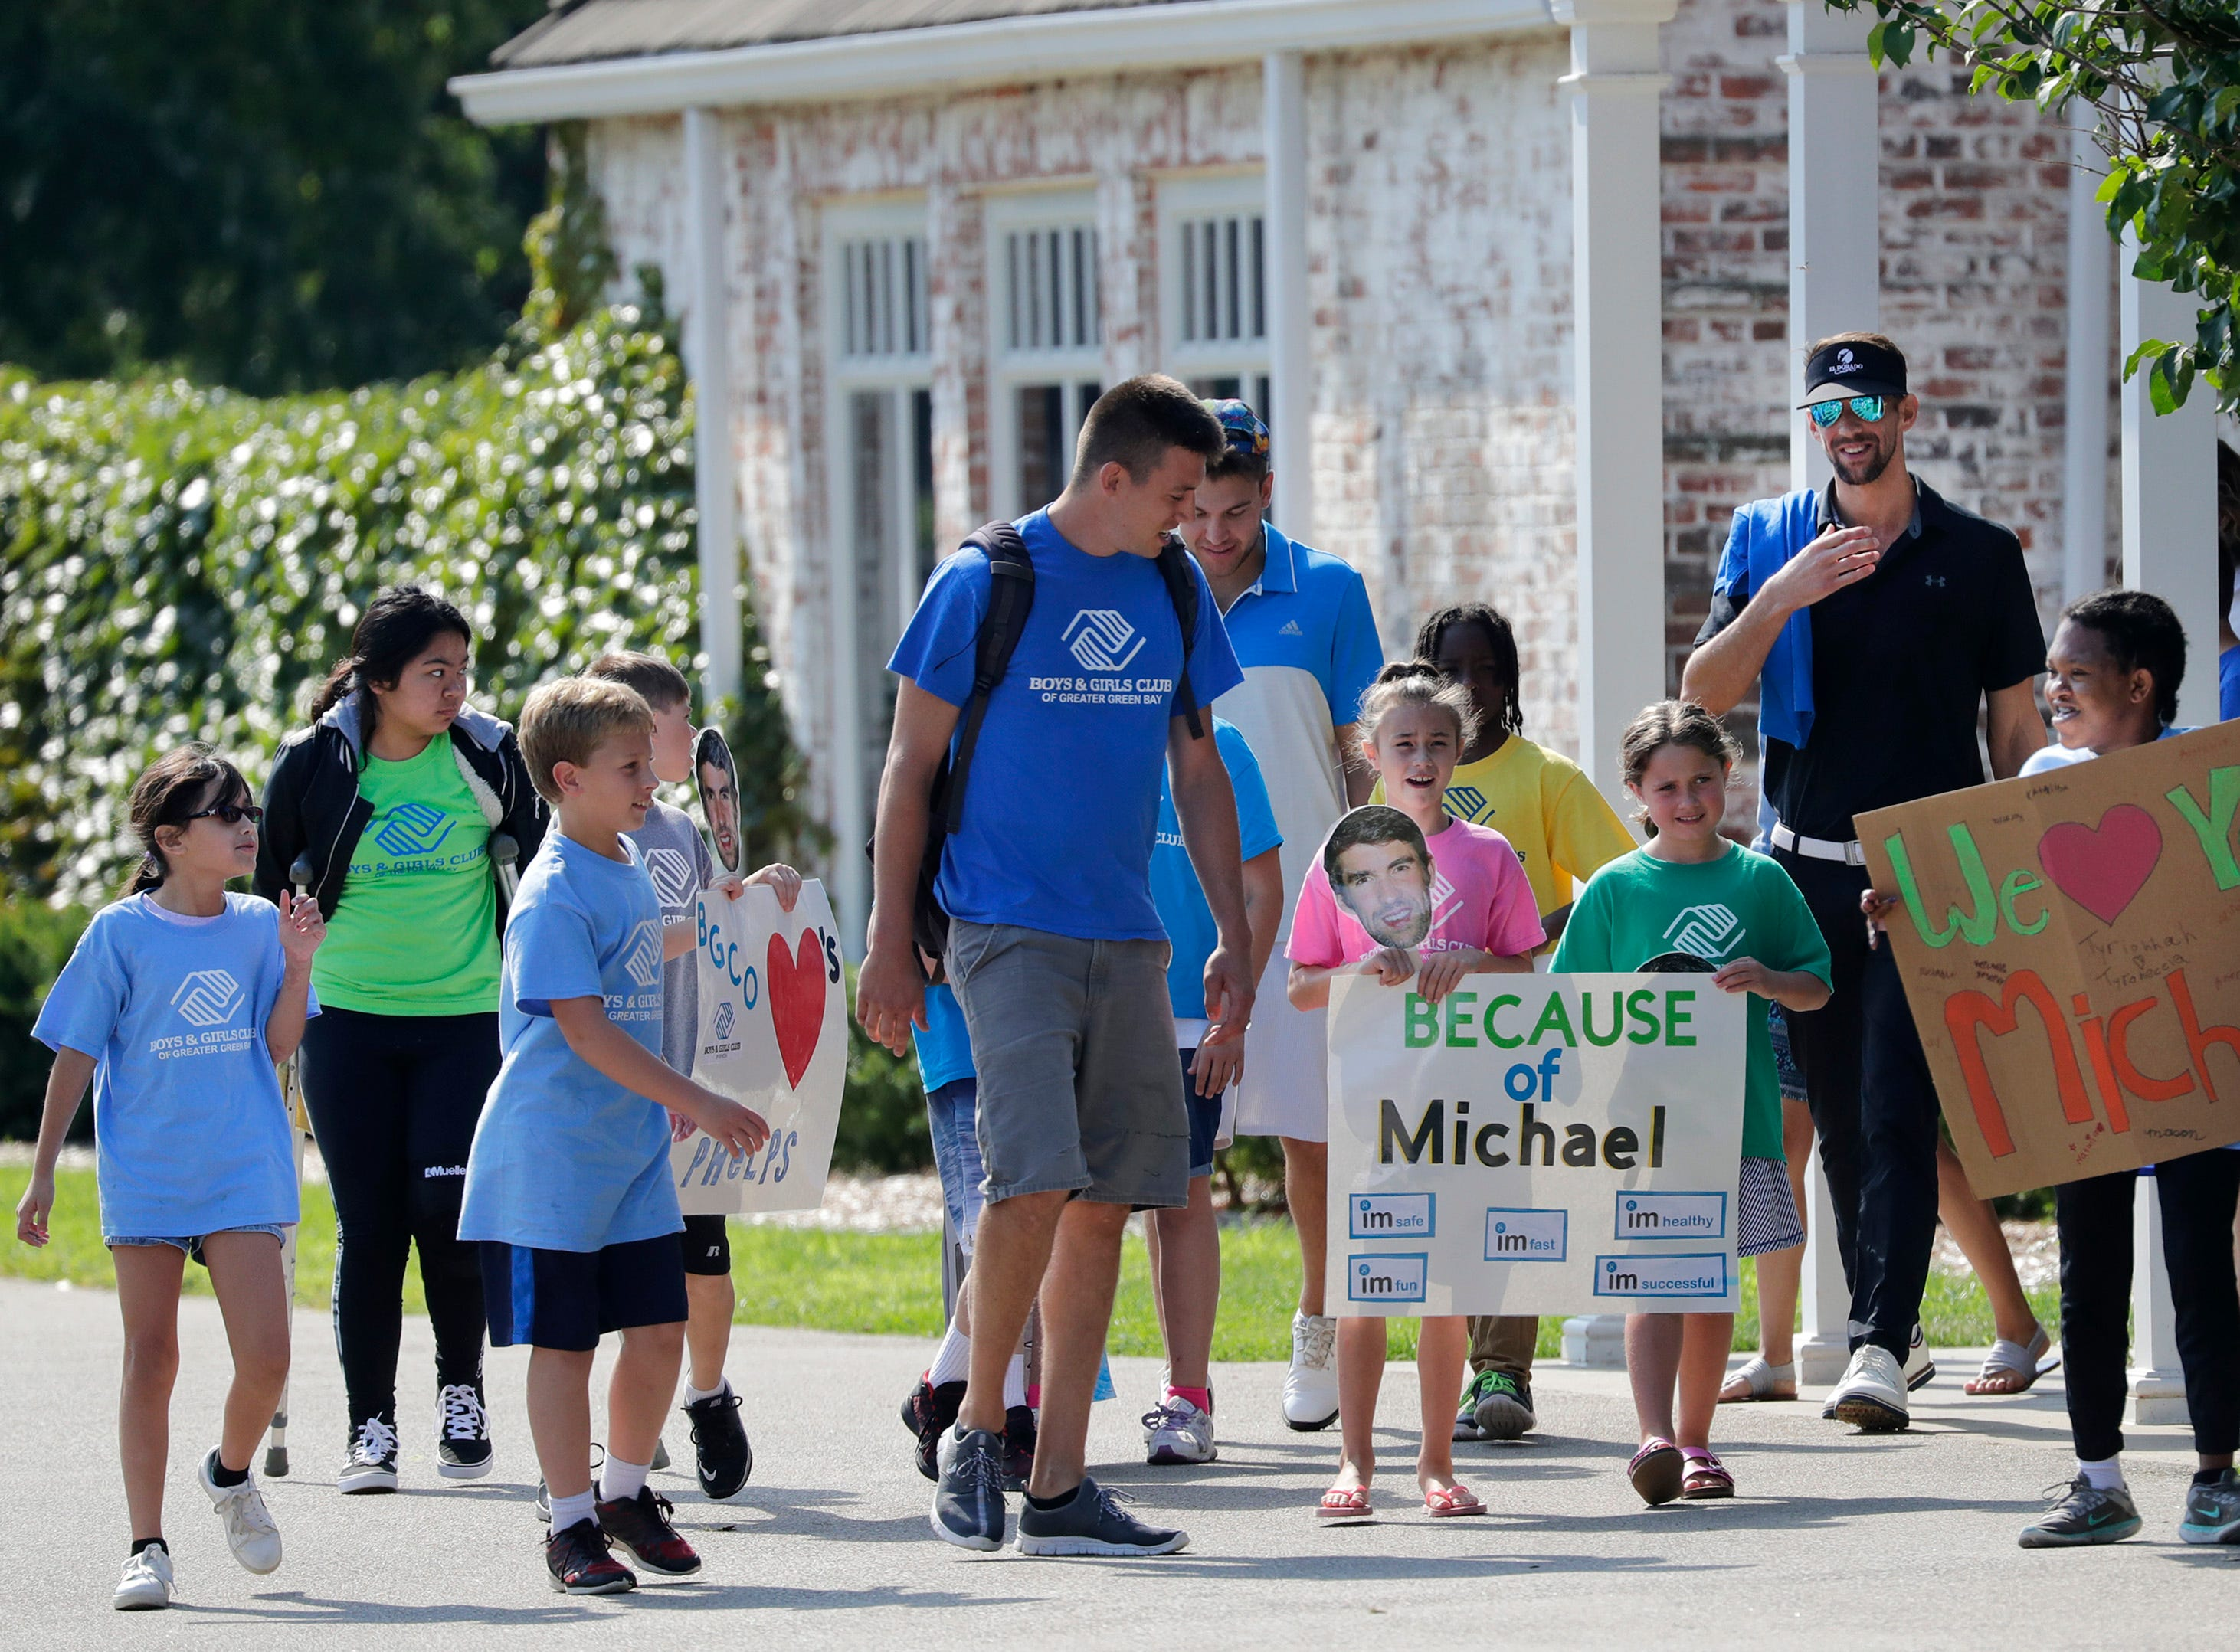 Michael Phelps, right, walks out with members of the Boys and Girls Club before the start of the U.S. Venture Open Wednesday, Aug. 8, 2018, at North Shore Golf Club in Menasha, Wis.